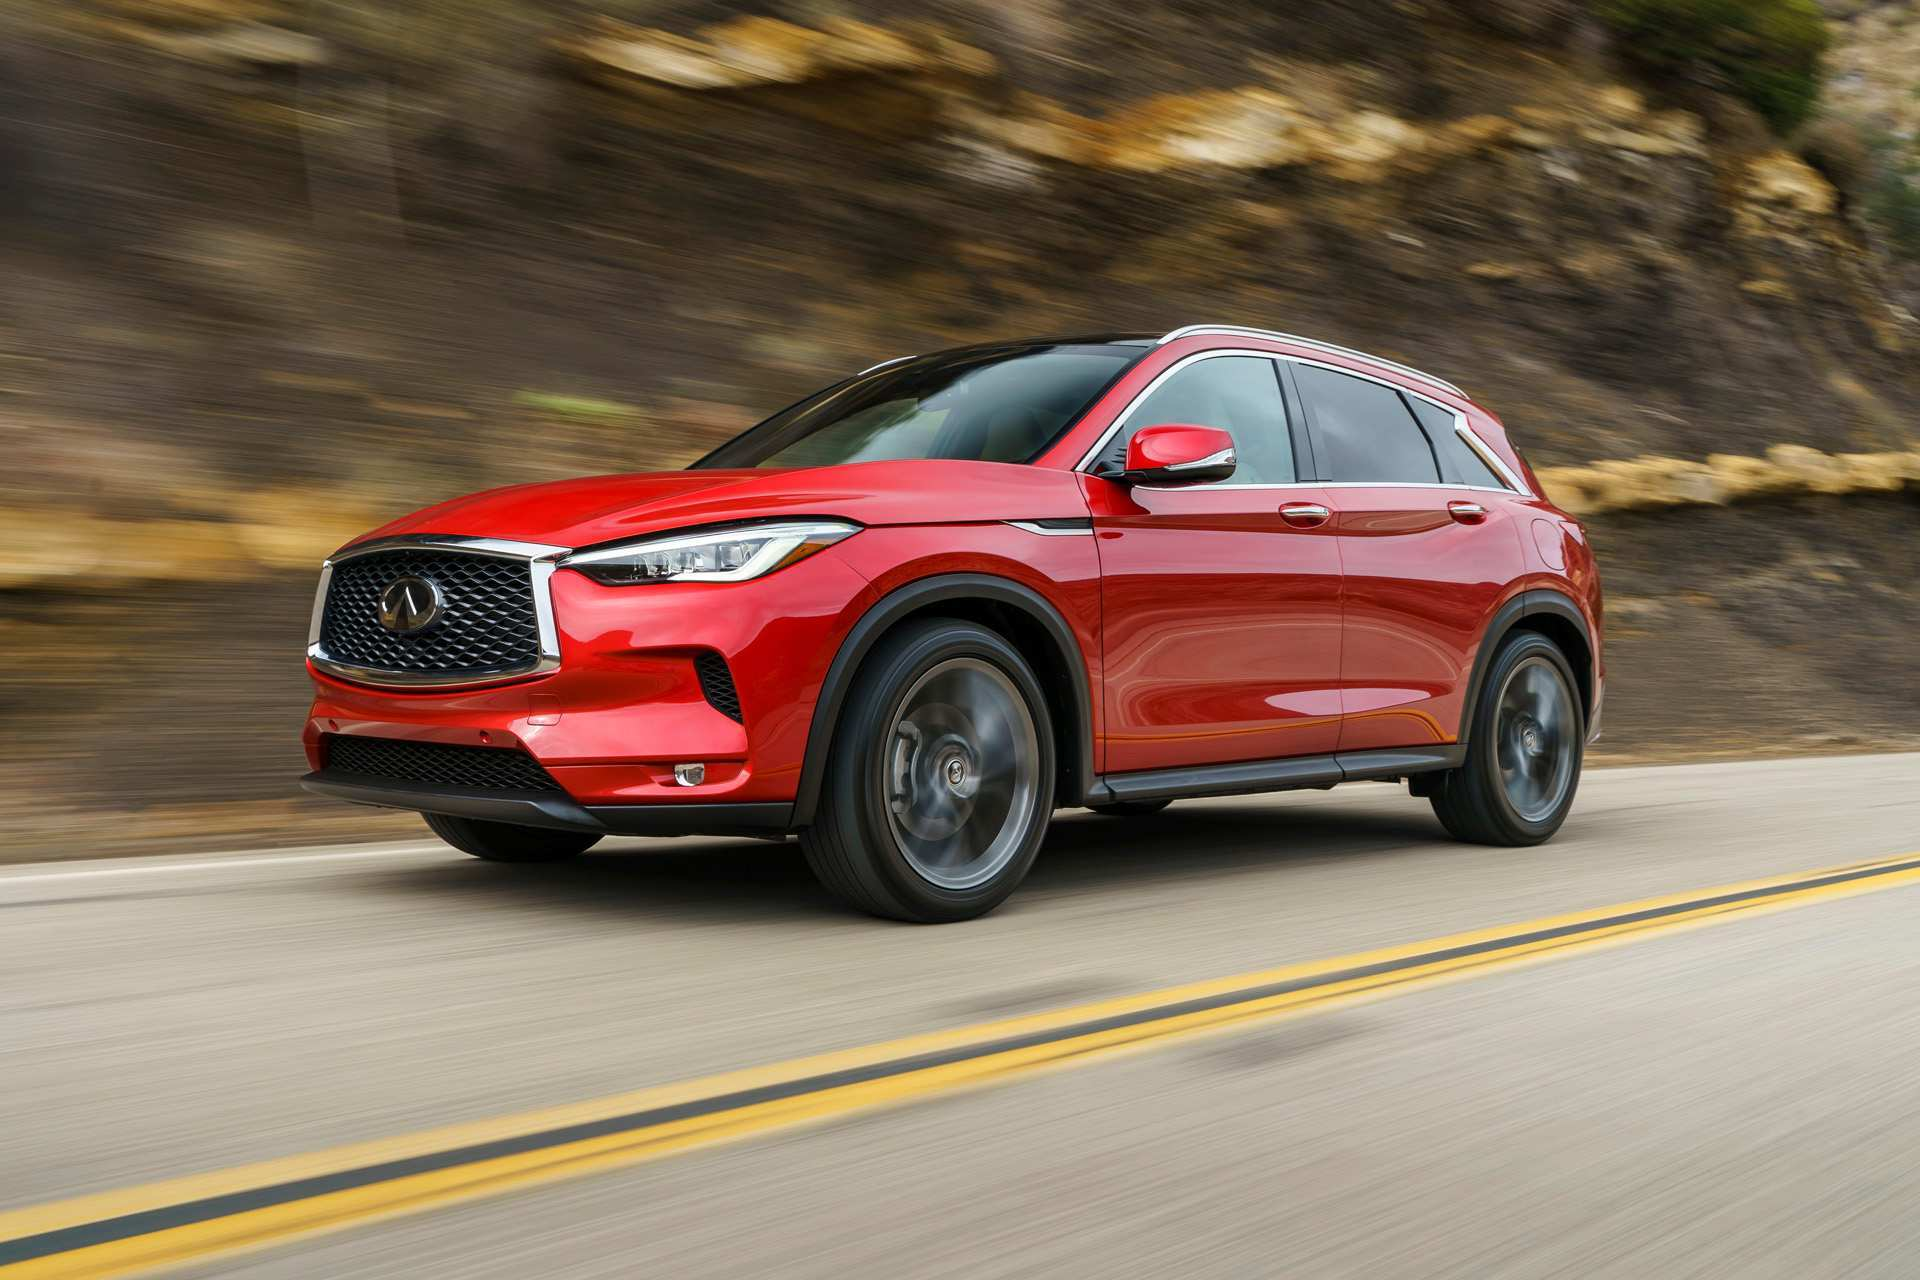 82 Gallery of 2019 Infiniti Qx50 Weight Specs and Review for 2019 Infiniti Qx50 Weight